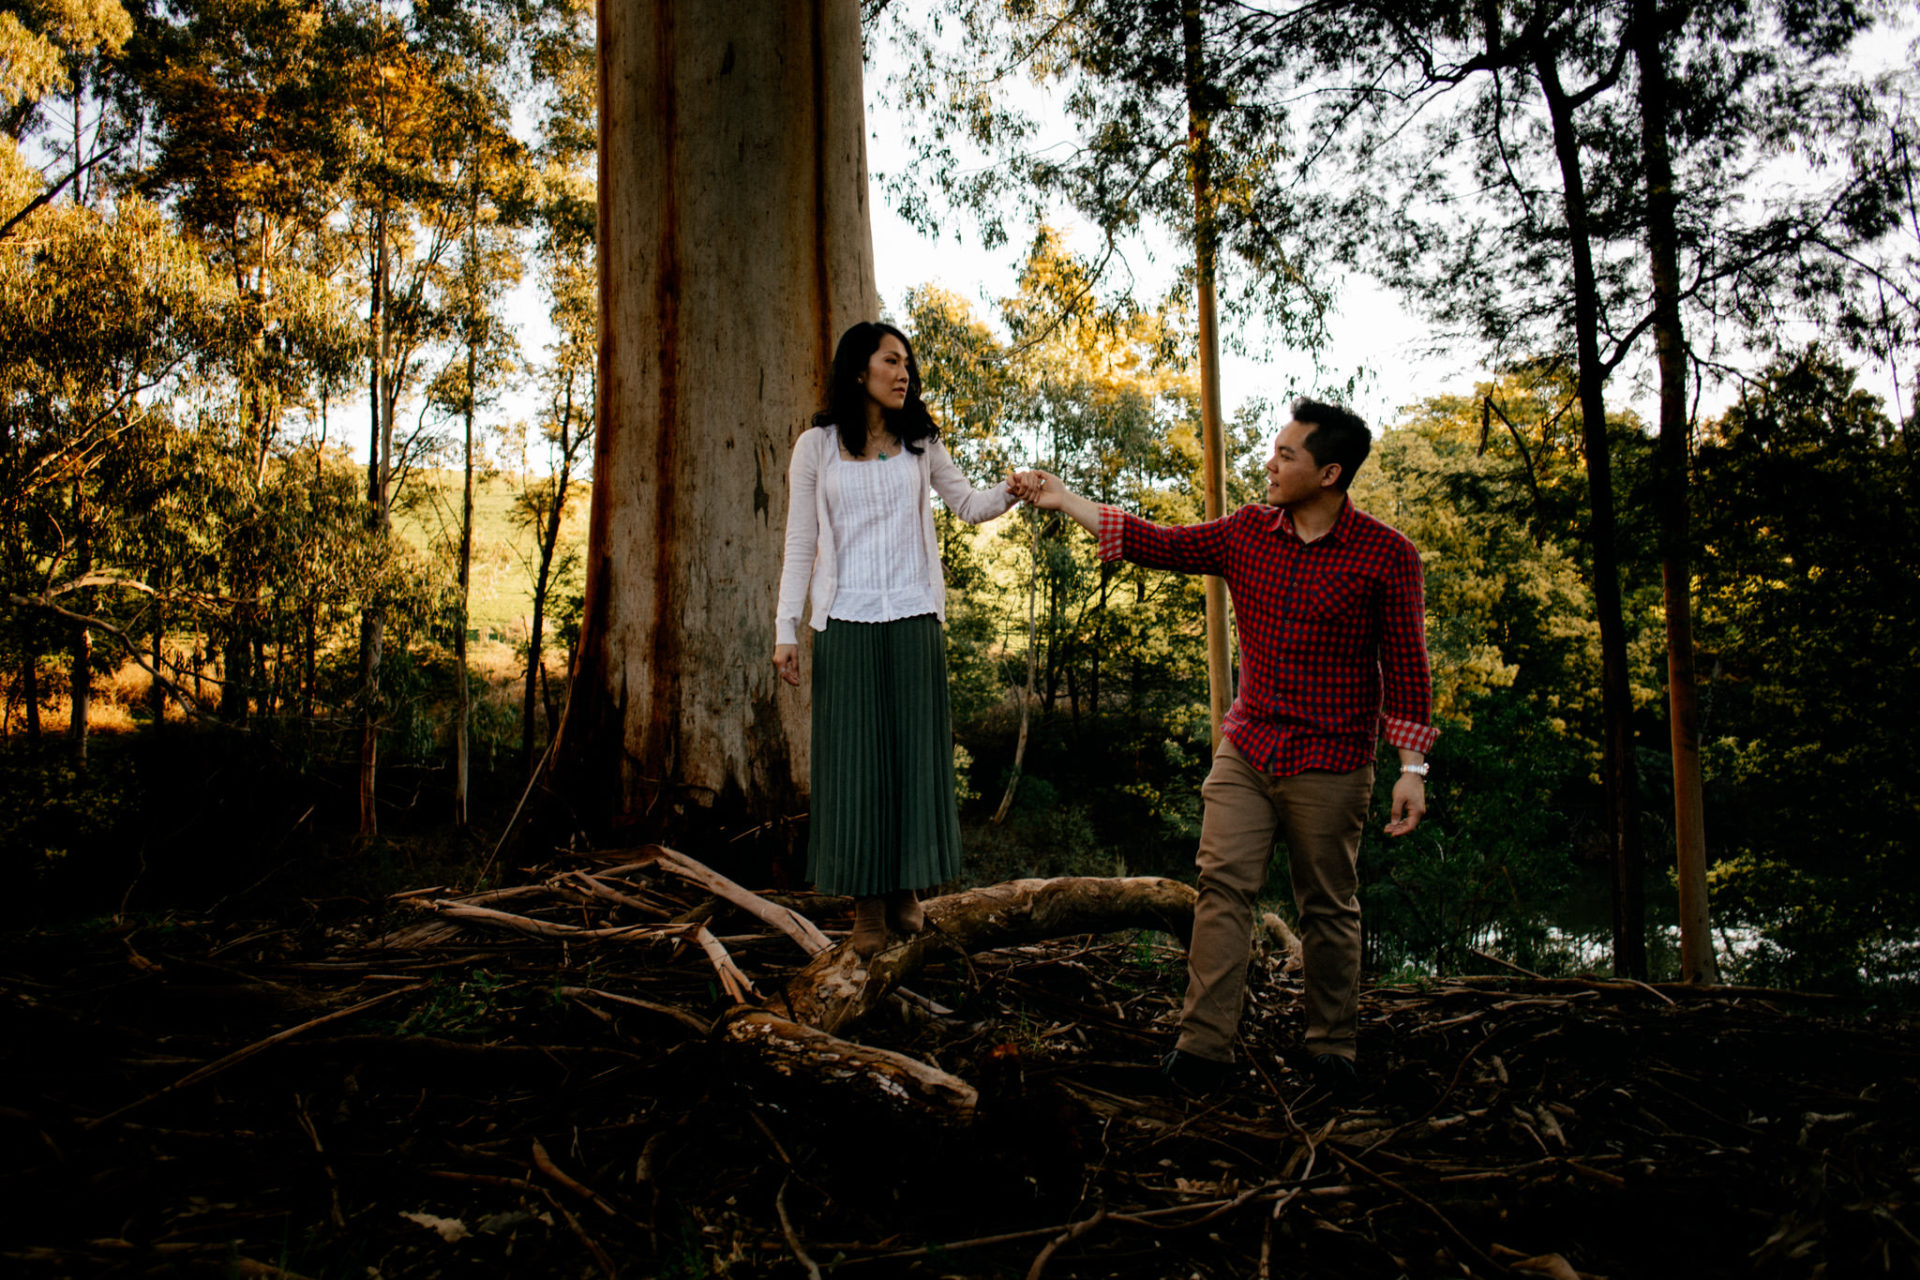 documentary wedding photographer melbourne-quirky engagement photos dandenong ranges wedding-winter wedding victorian-asian australian wedding photos-unposed candid portraits